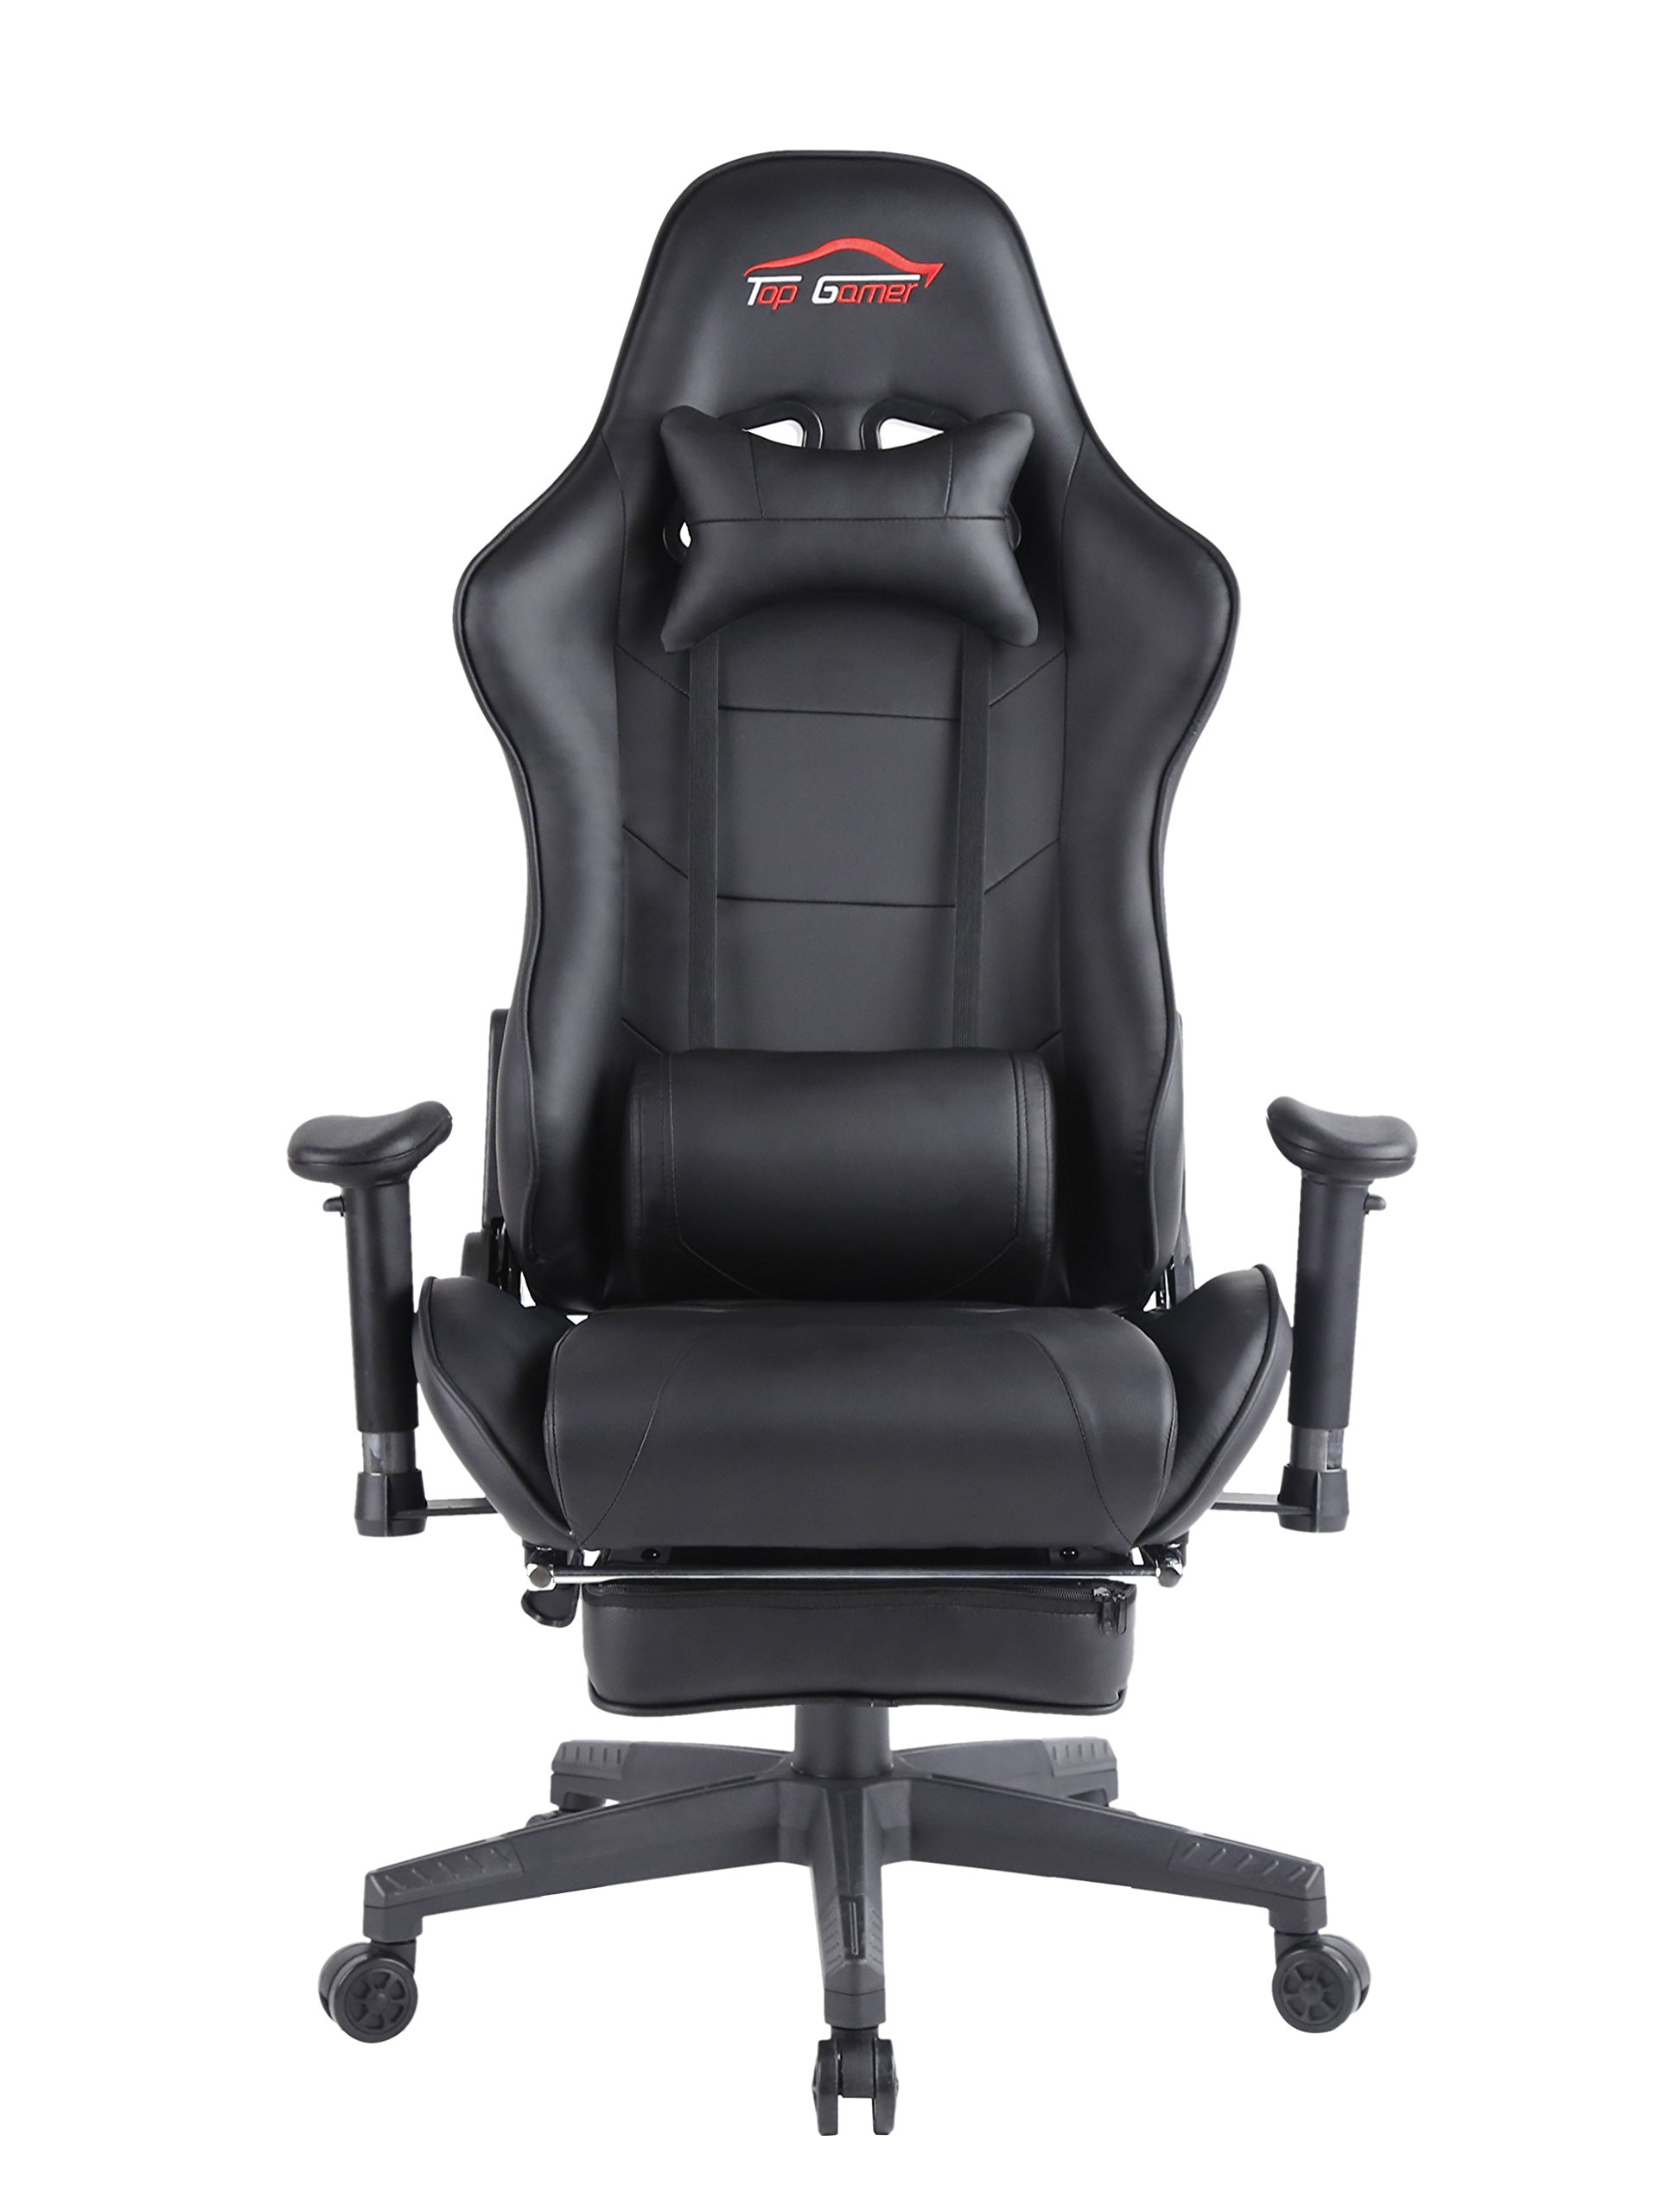 Top Gamer Ergonomic Gaming Chair High Back Swivel Computer Office Chair with Footrest Adjusting Headrest and Lumbar Support Racing Chair (Black-0009) by Top Gamer